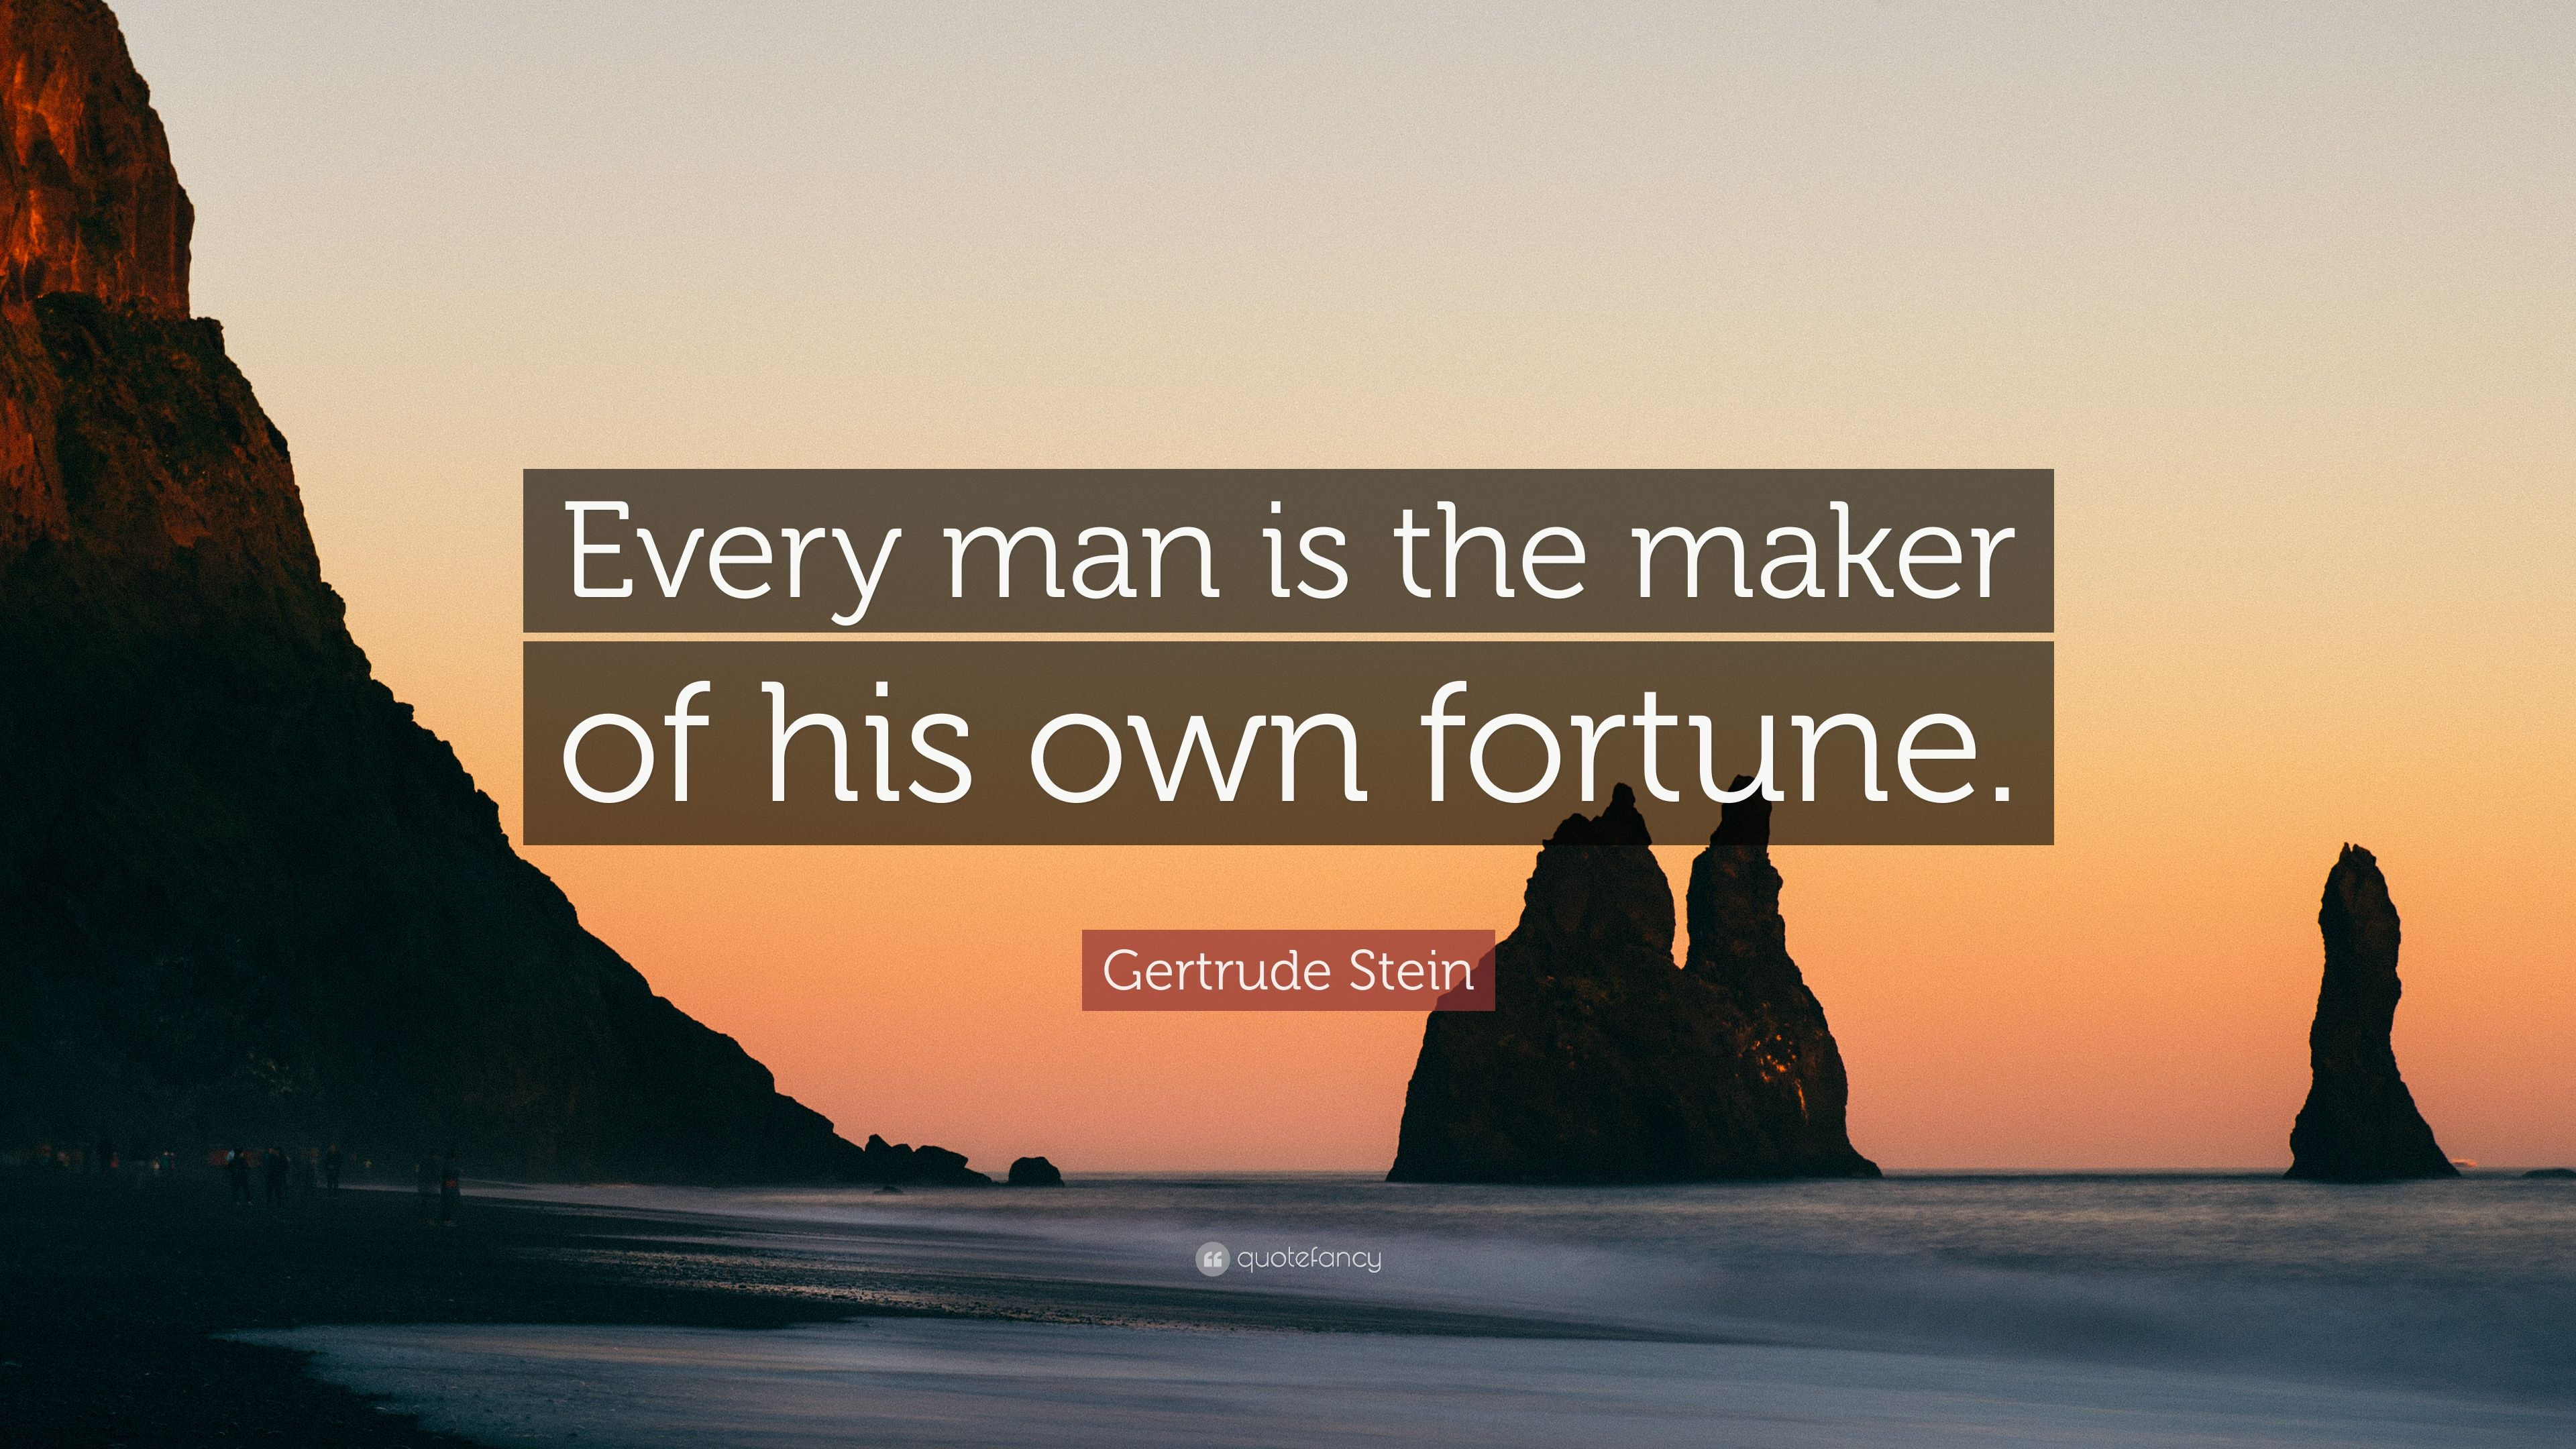 Image of: Own Destiny Gertrude Stein Quote every Man Is The Maker Of His Own Fortune Quote Insurance Gertrude Stein Quote every Man Is The Maker Of His Own Fortune